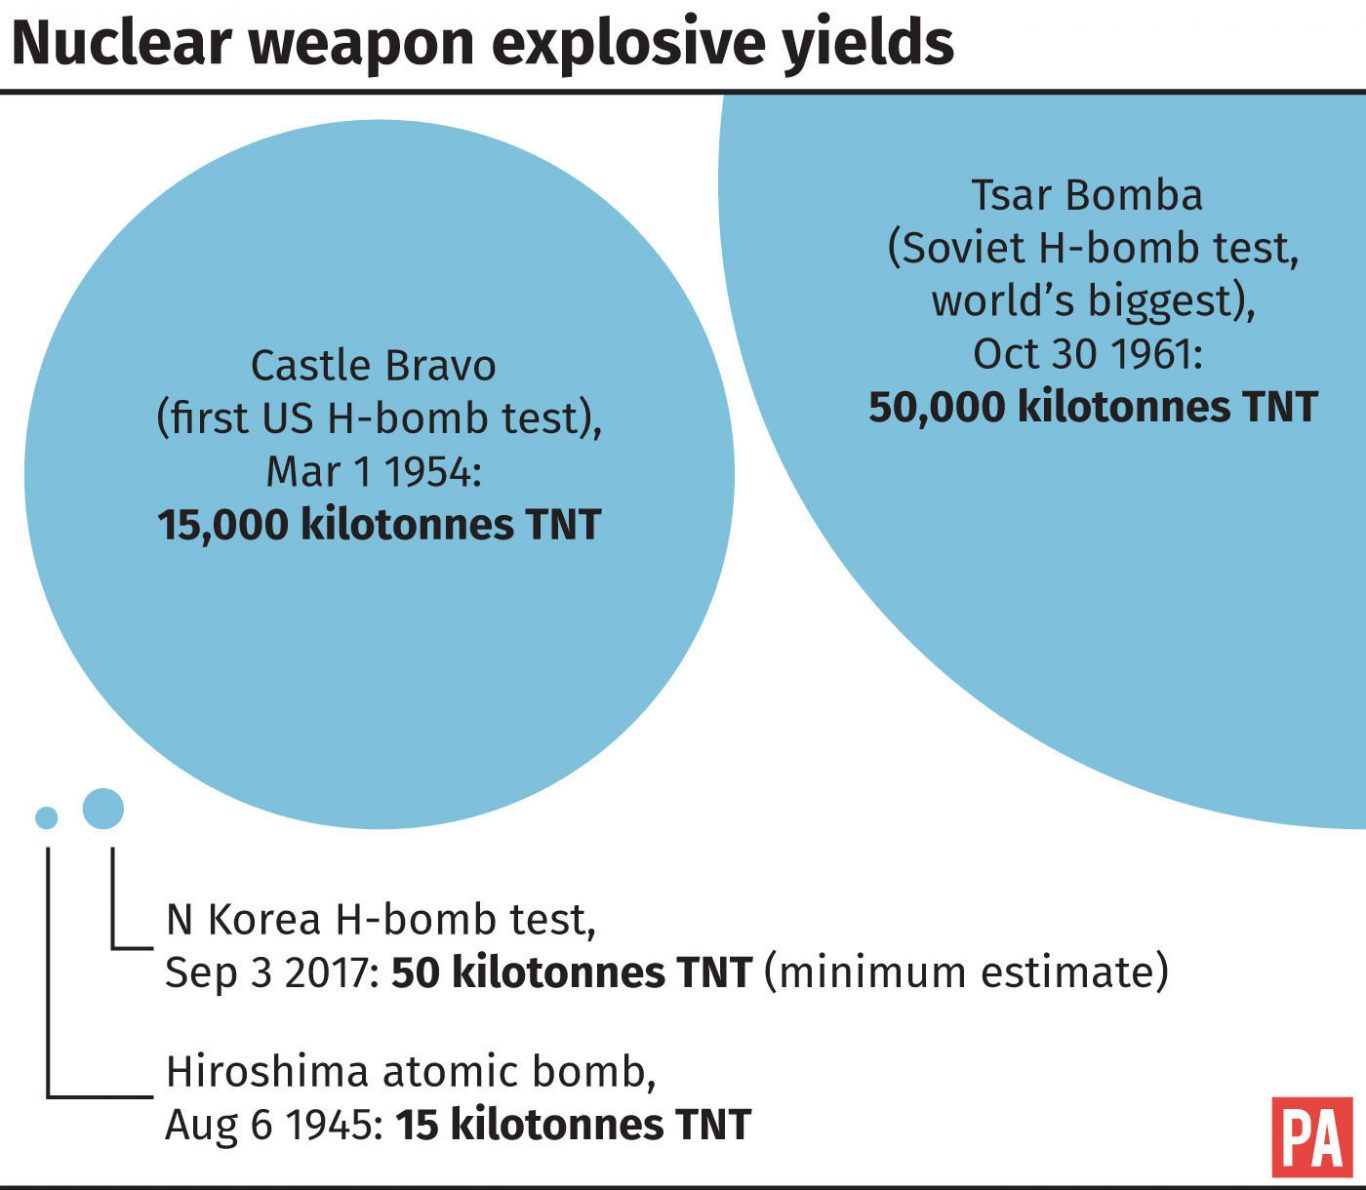 Israel condemns North Korea nuclear test